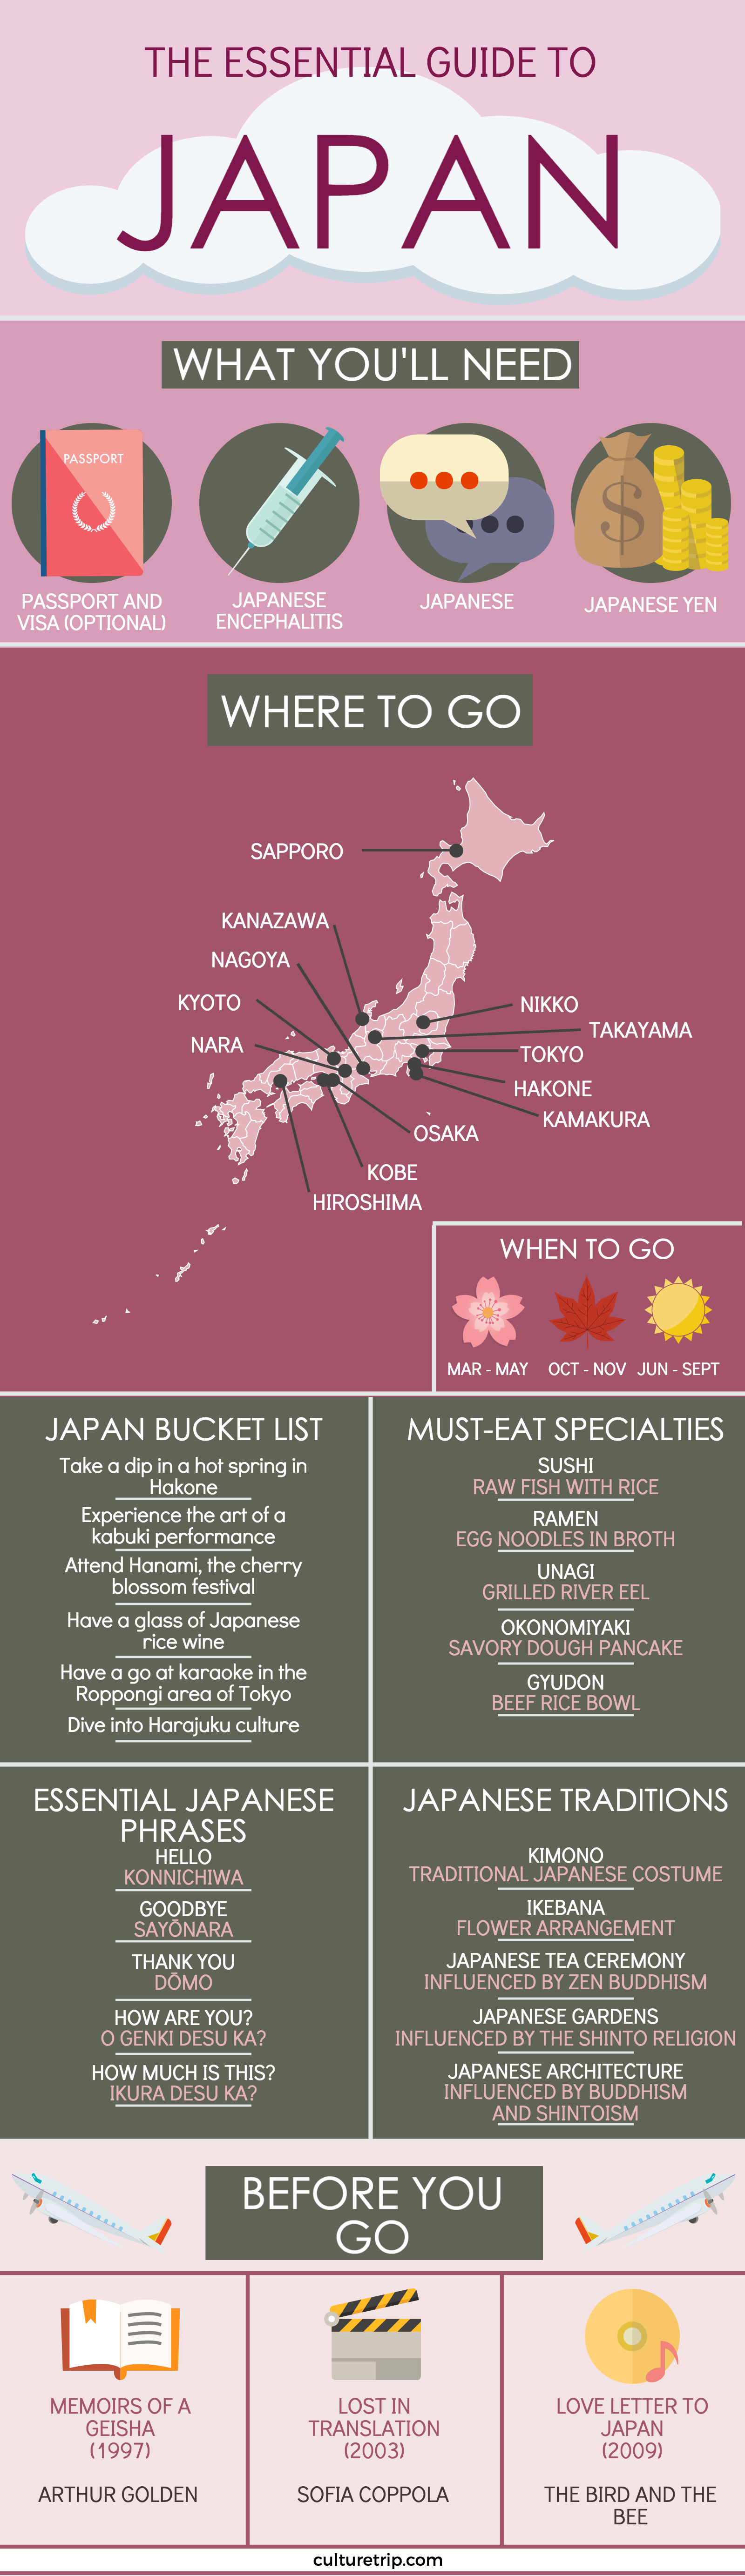 The Essential Japan Travel Guide (Infographic)